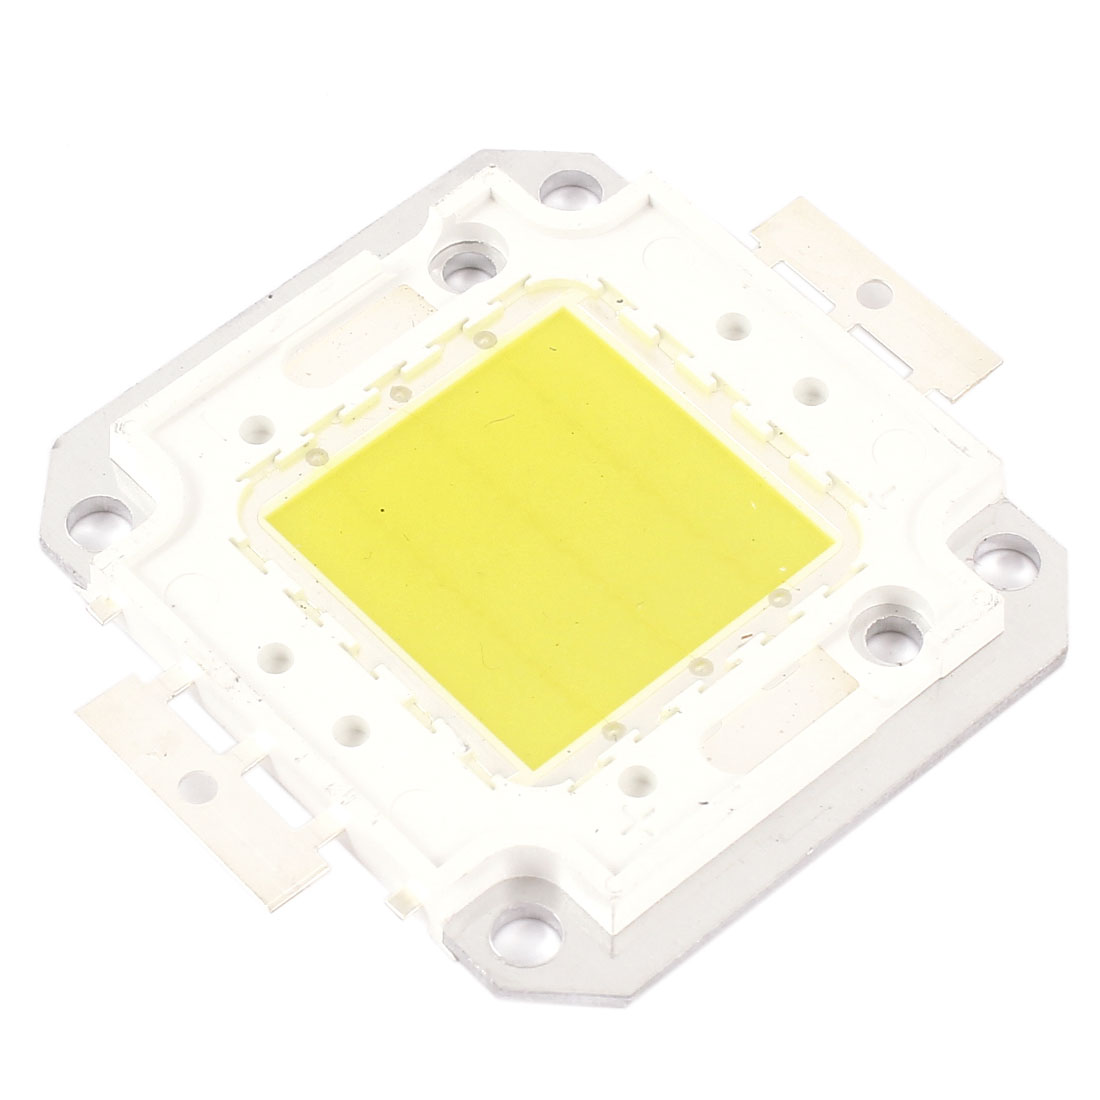 1.8A 30W White Light High Power LED Lamp Emitter Plate 2700LM